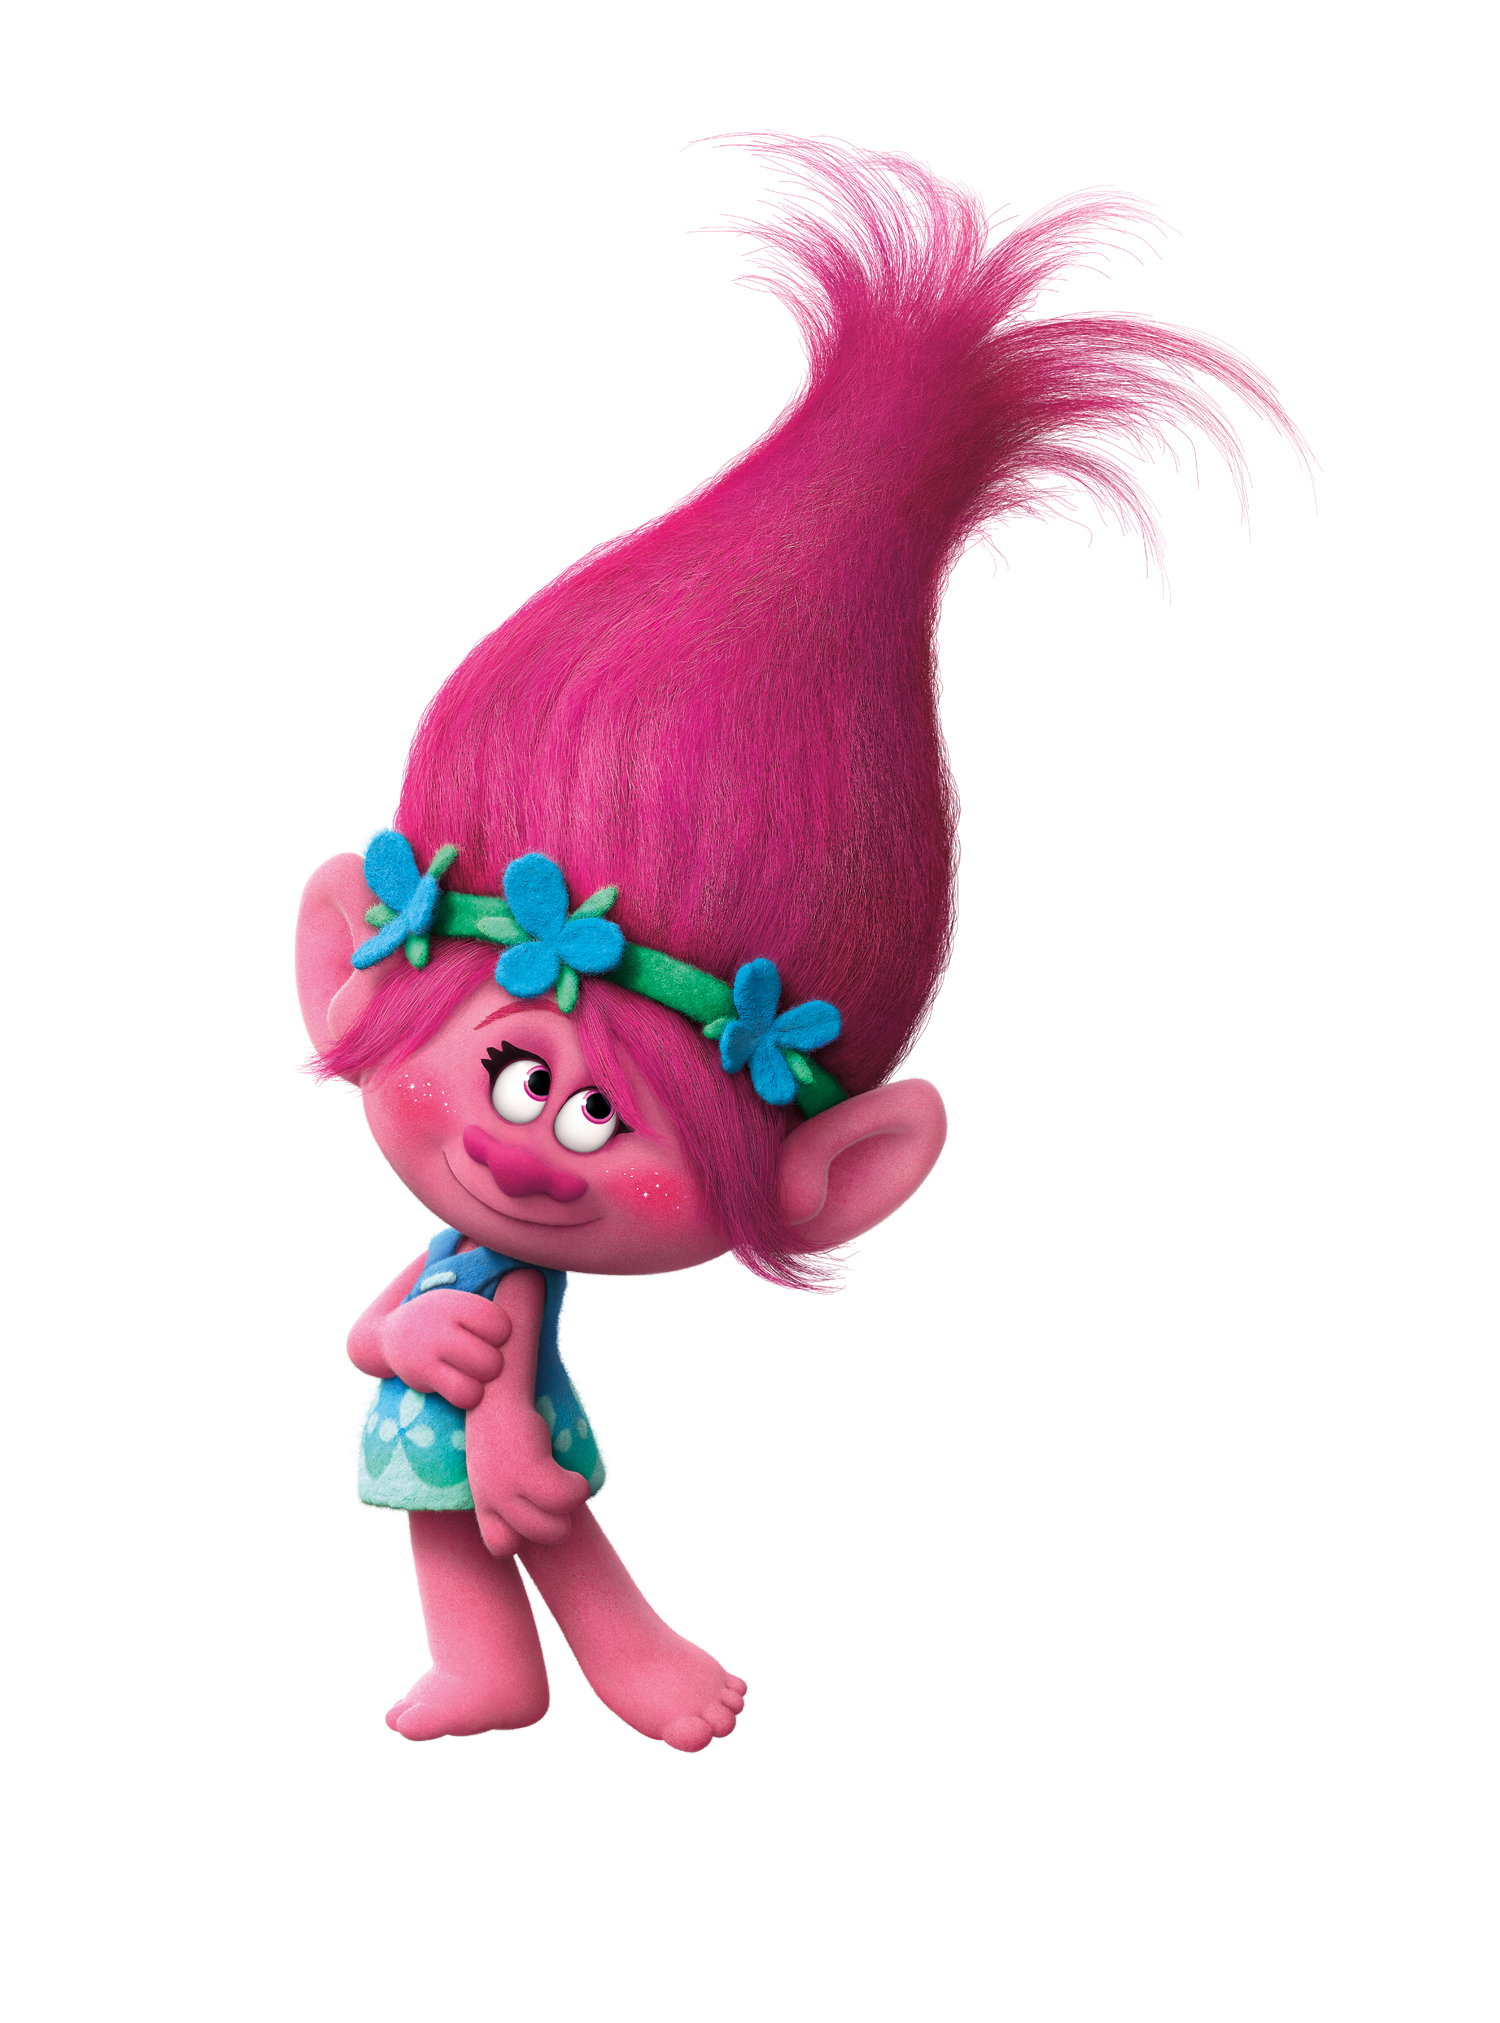 Www Fhetoolkits Com Trolls Catalog Attach Downloads Celebrate Trolls Trolls Characters Tr Char Shot Poppy 01a V Trolls Birthday Craft Giveaway Poppy And Branch